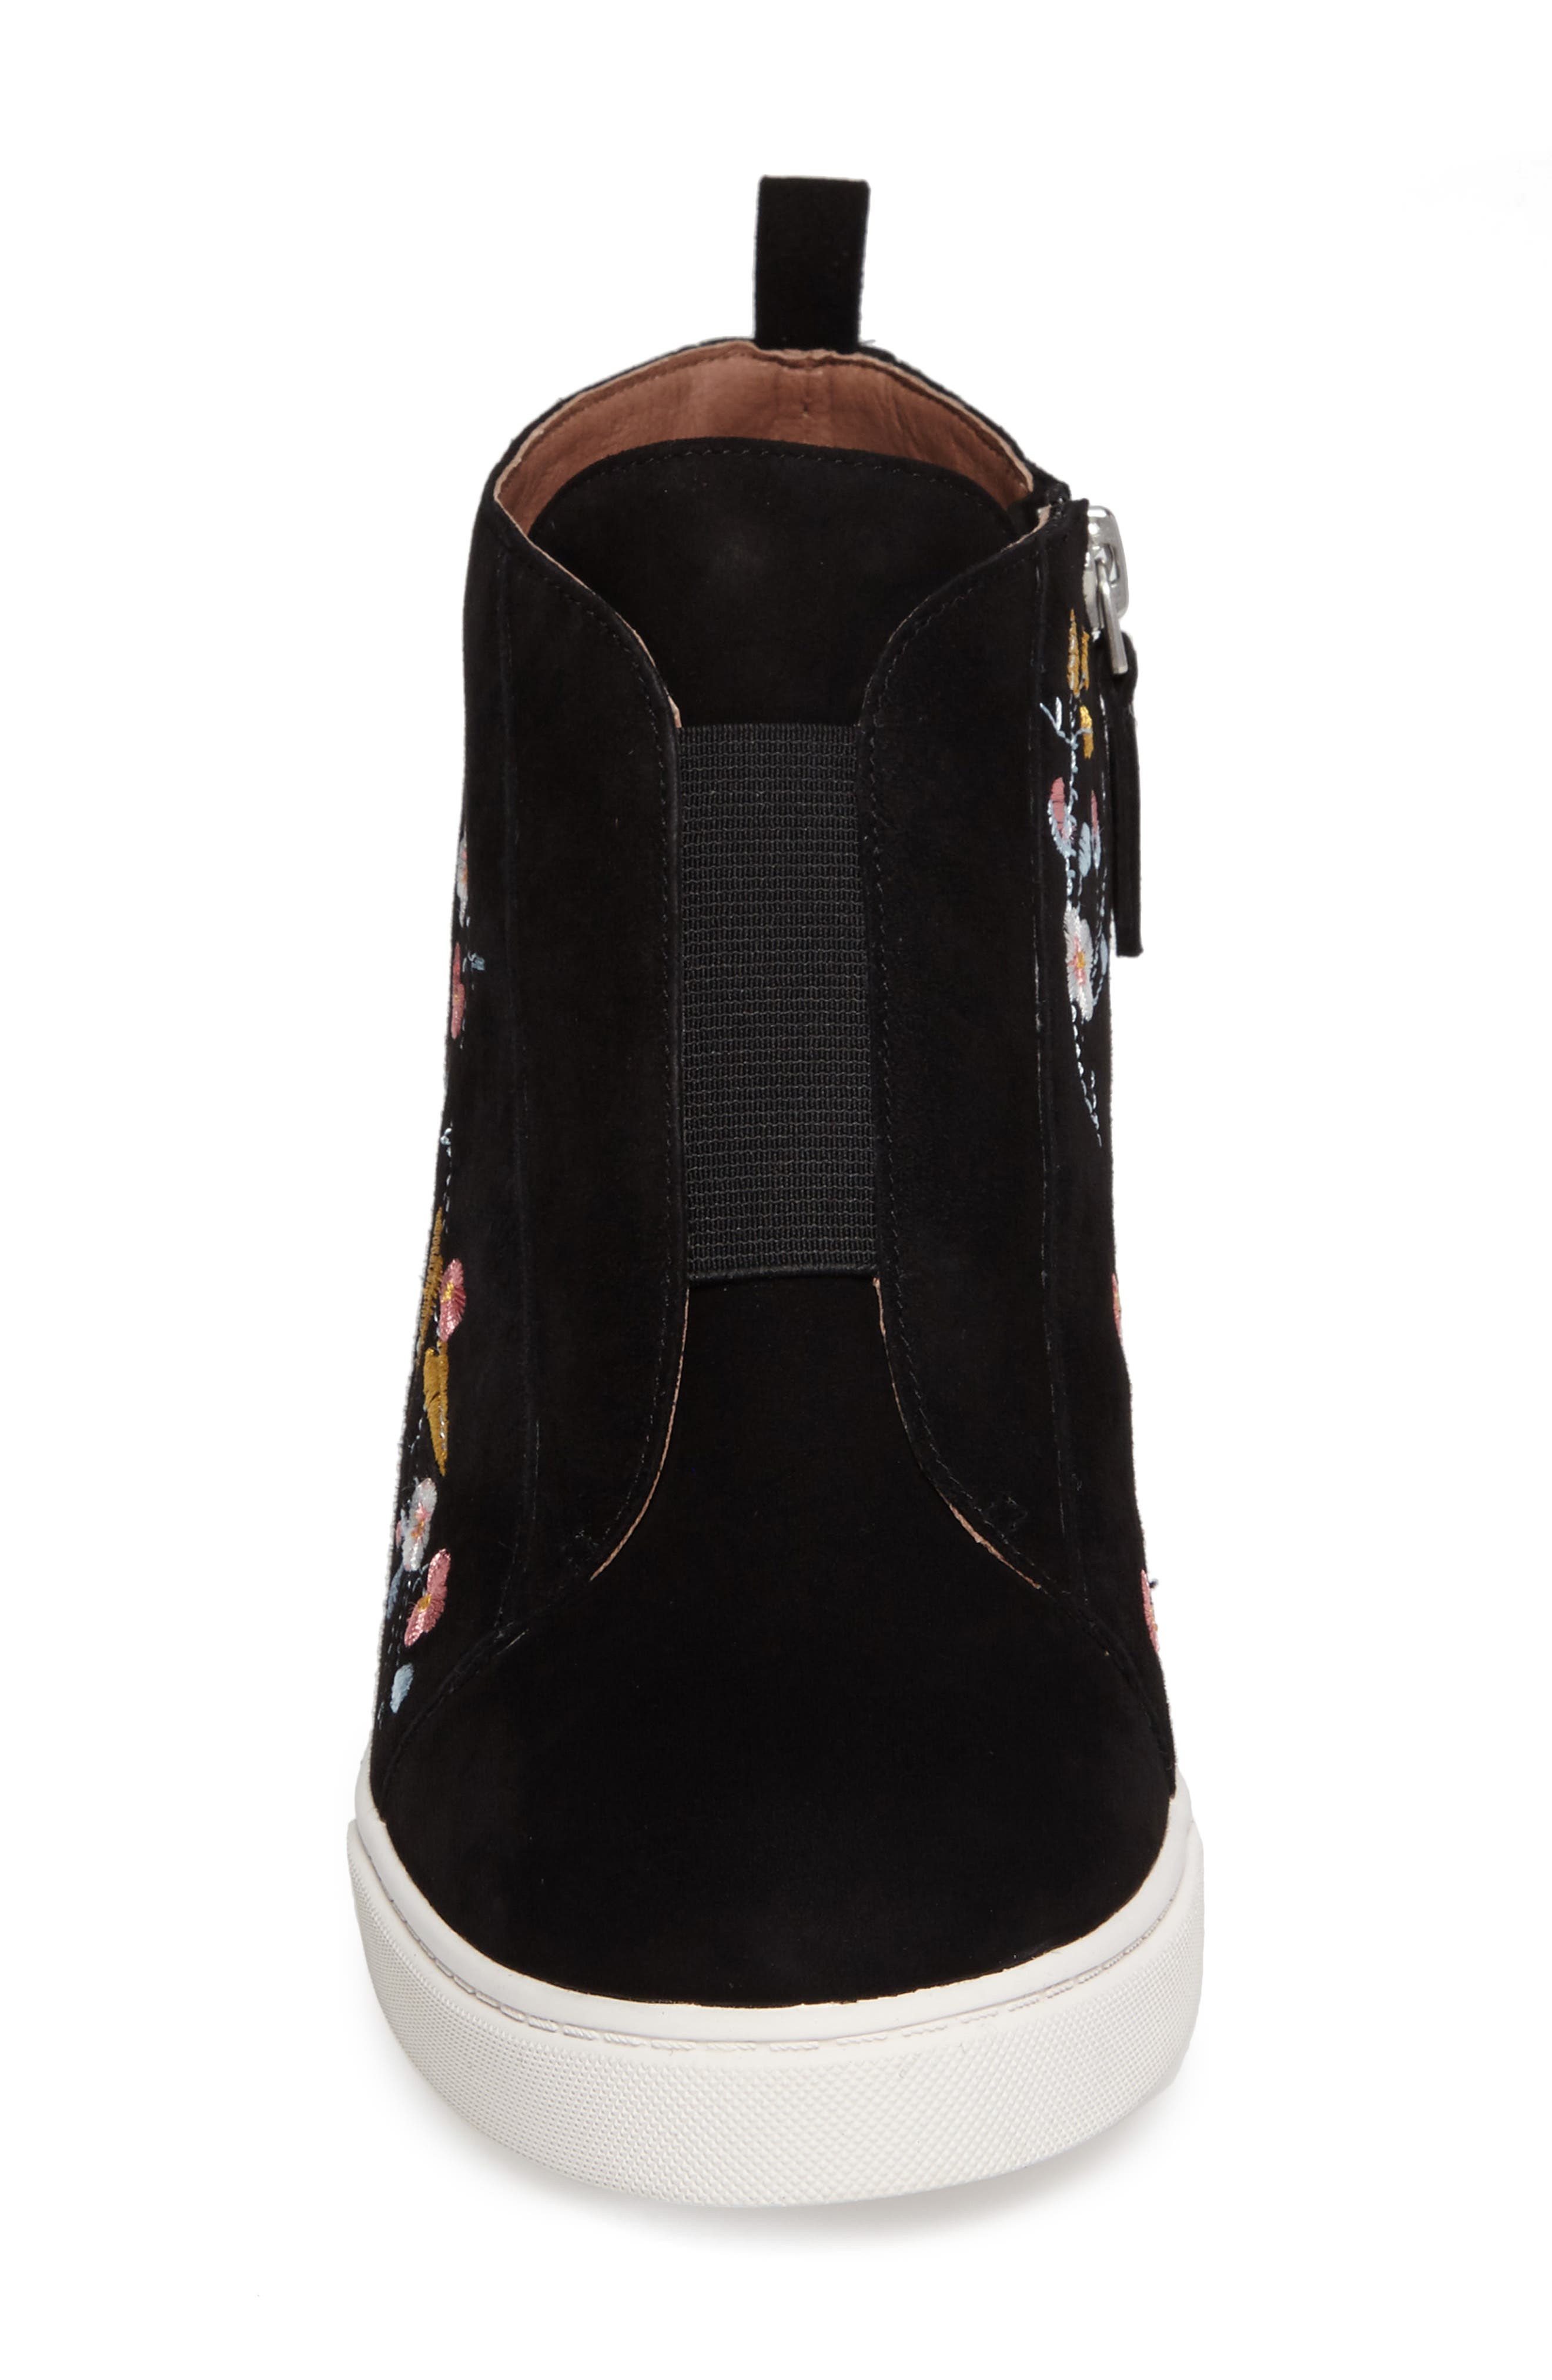 Felicia II Wedge Bootie,                             Alternate thumbnail 4, color,                             Black Embroidery Suede